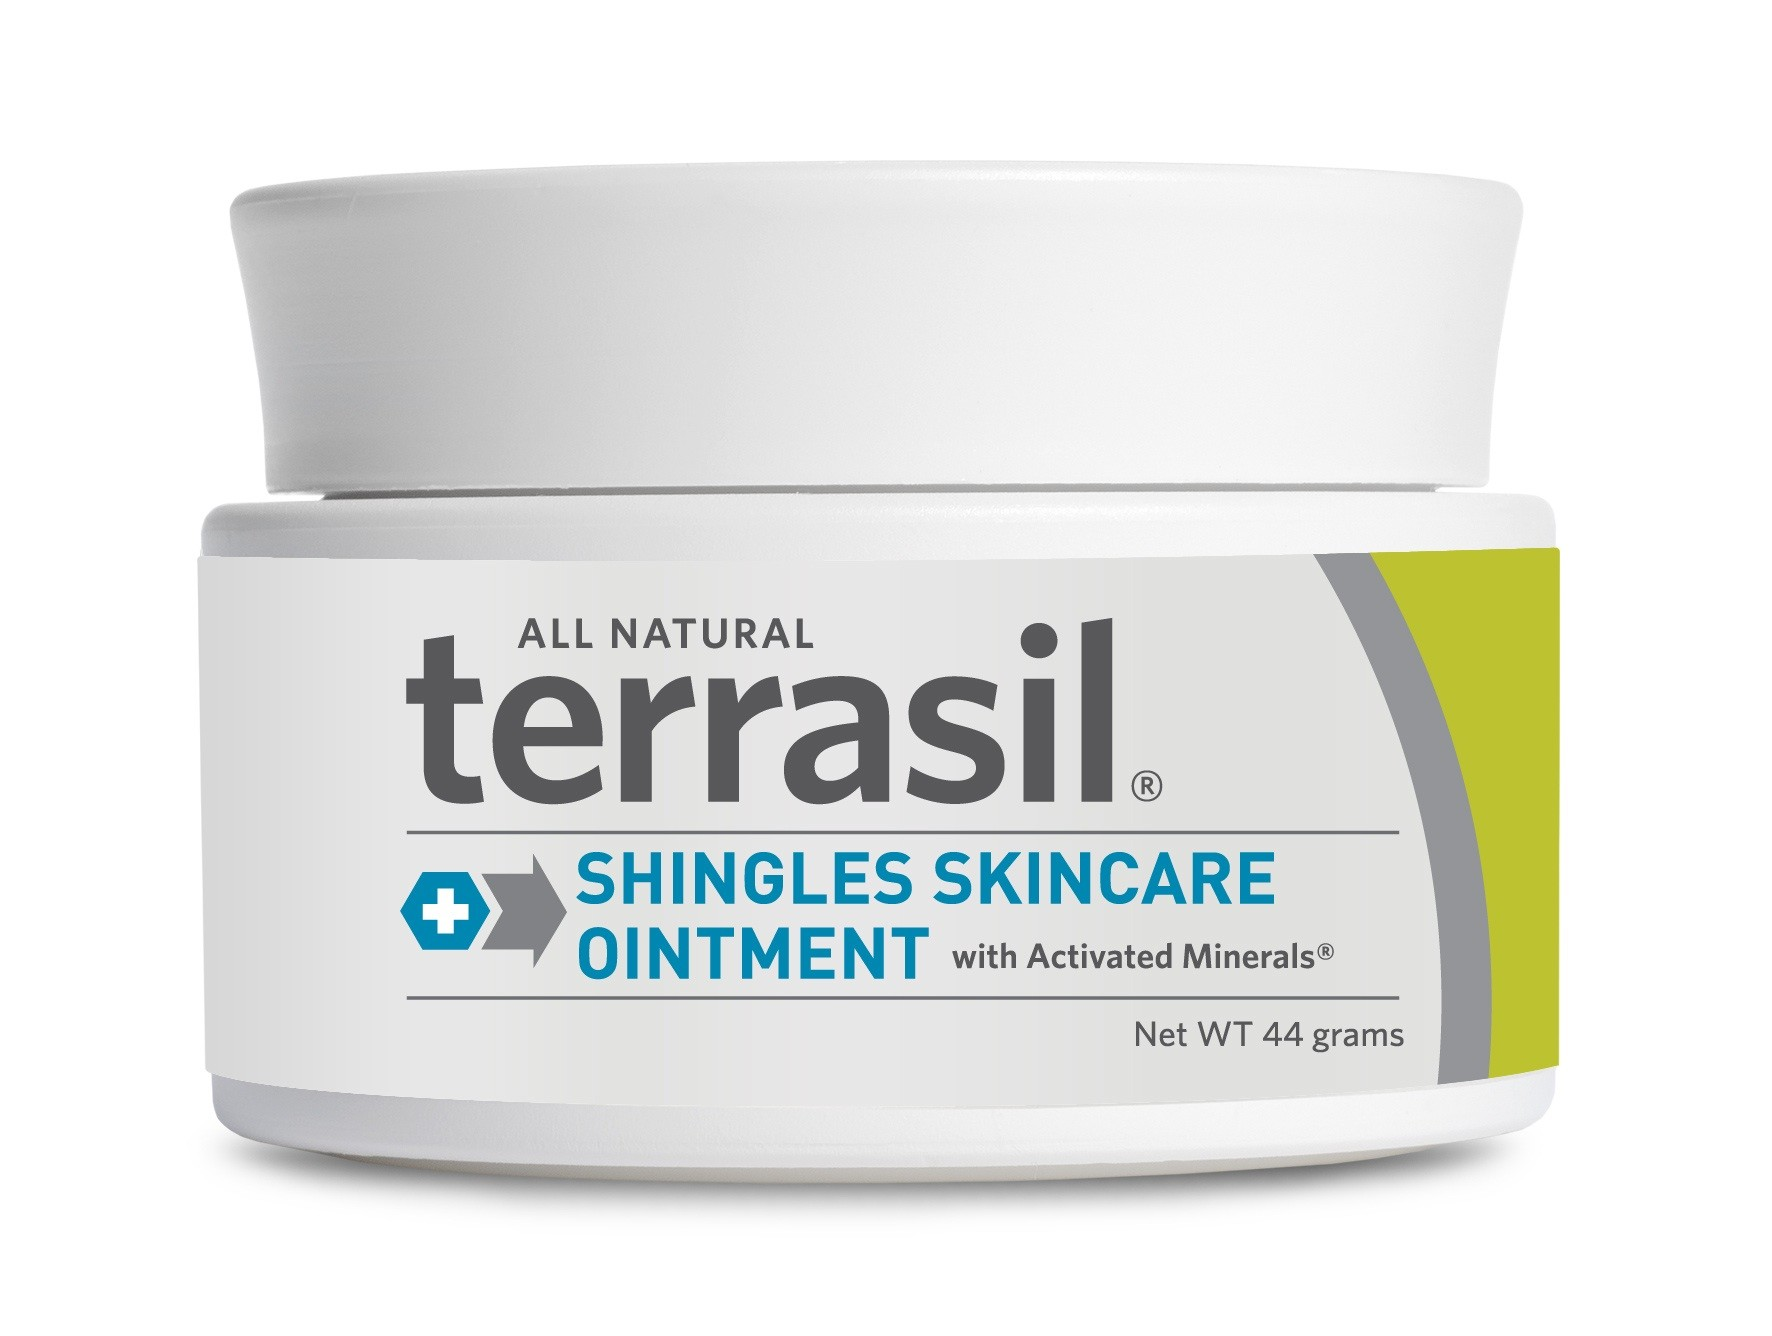 The shingles skincare ointment developed by Aspiera Medical, a Woonsocket-based firm, is part of a new product study with the Cranston Senior Enrichment Center. It will also be launched nationally in Walgreens beginning in March.